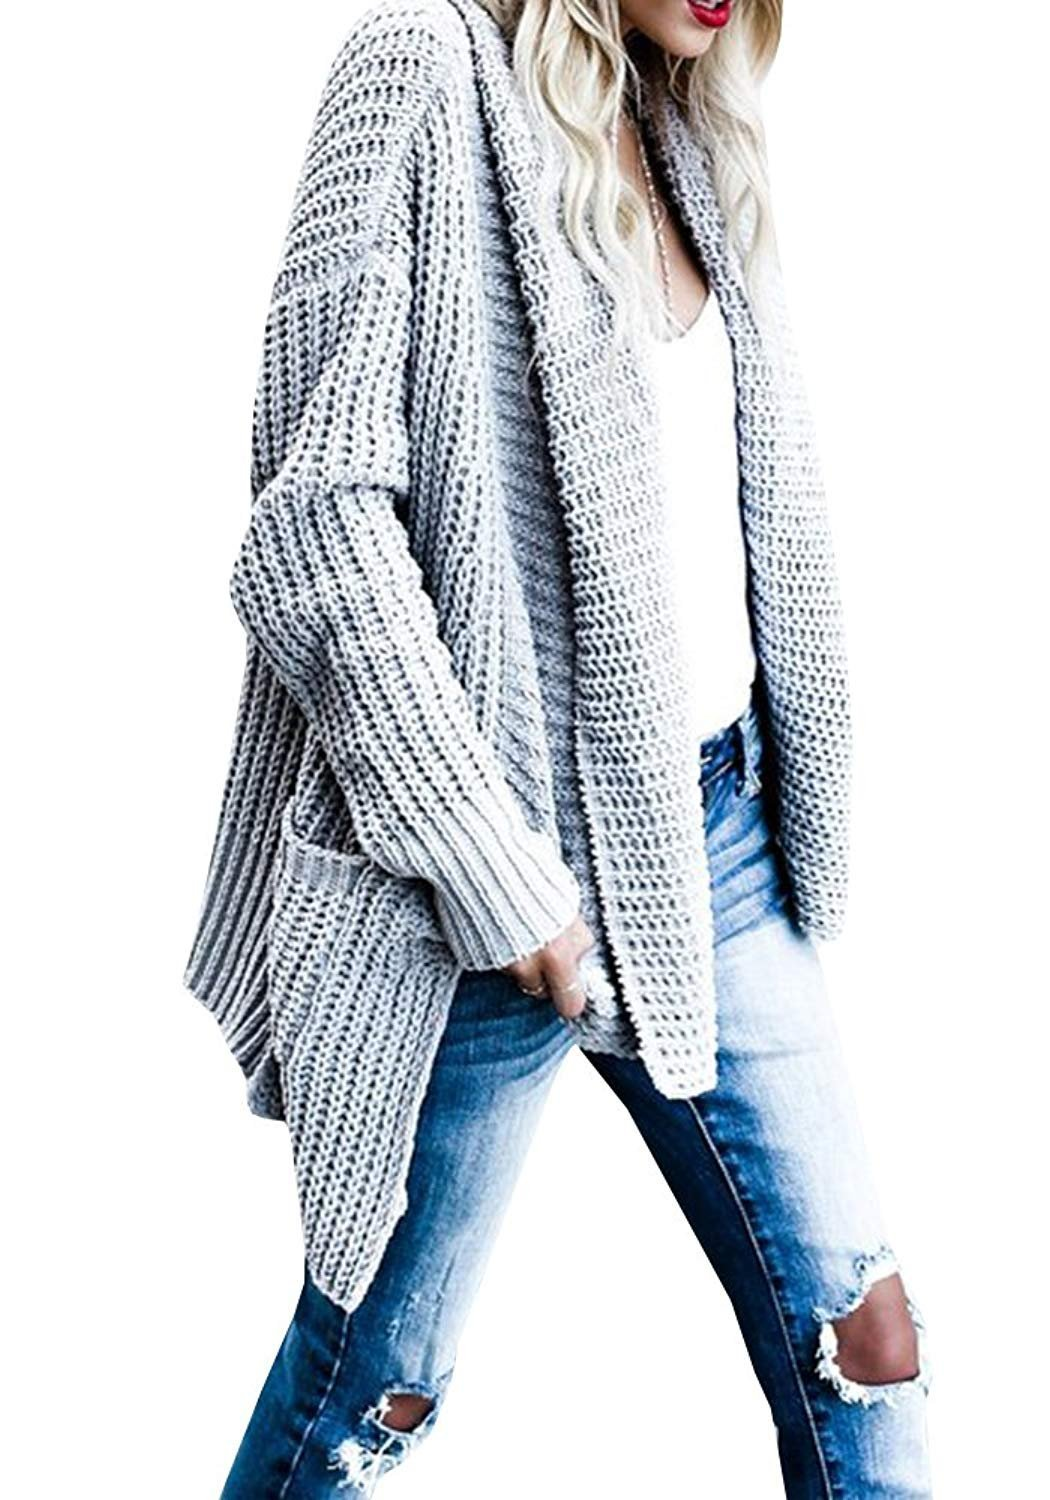 FIRENGOLI Womens Open Front Chunky Sweater Cardigan Long Sleeve Knit Coat with Pocket Grey XL by FIRENGOLI (Image #2)